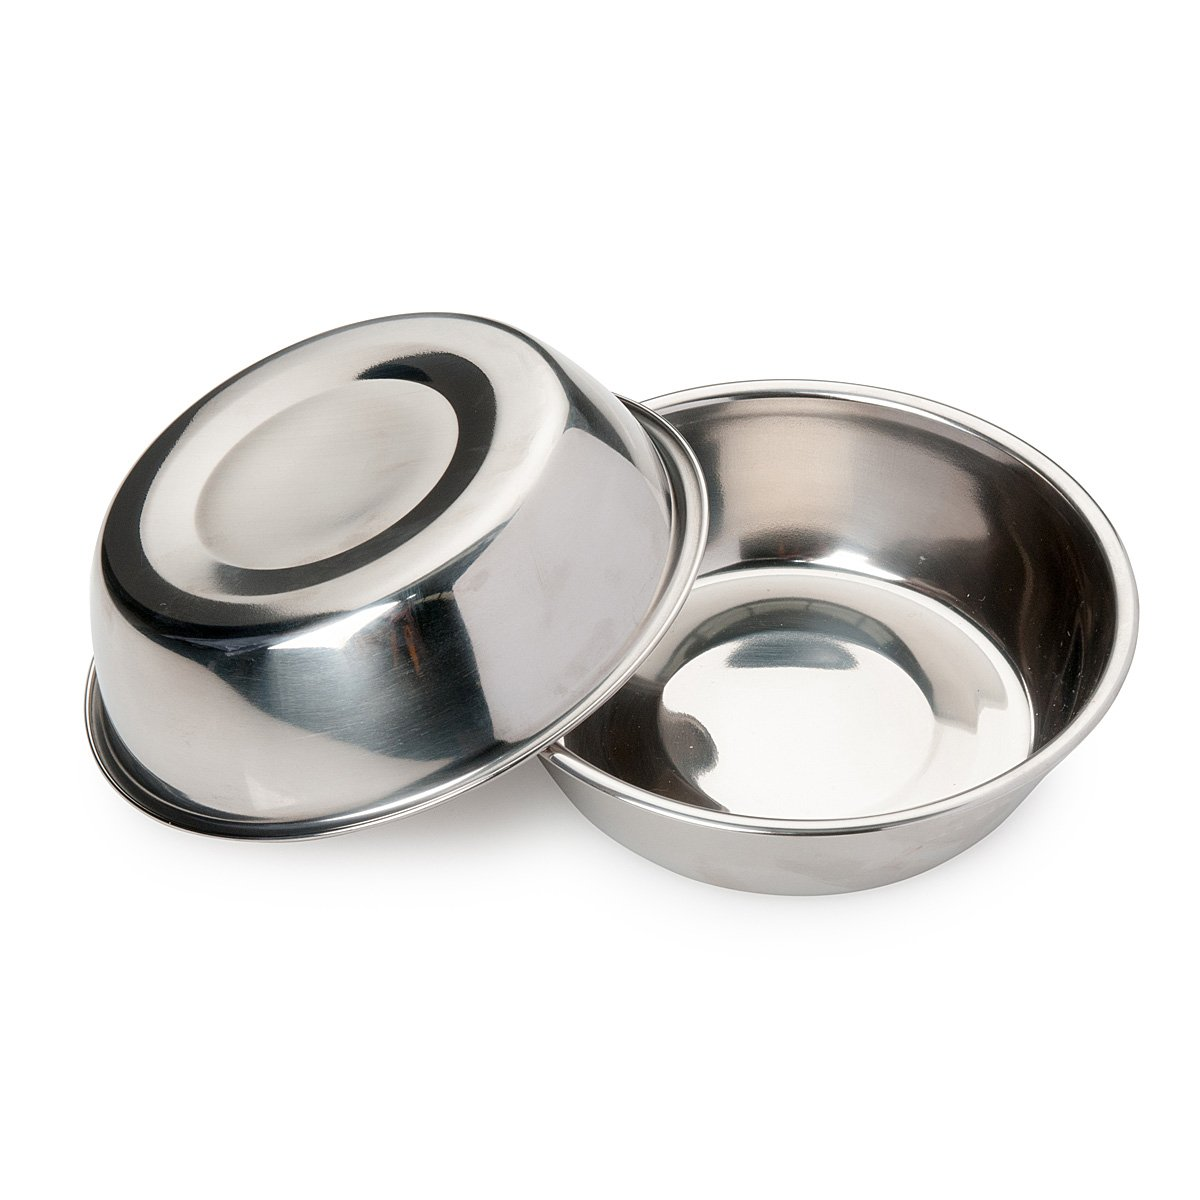 Bonza Two Piece 12oz Replacement Stainless Steel Dog Bowls for Pet Feeding Station. for Small Dogs and Cats (Small)